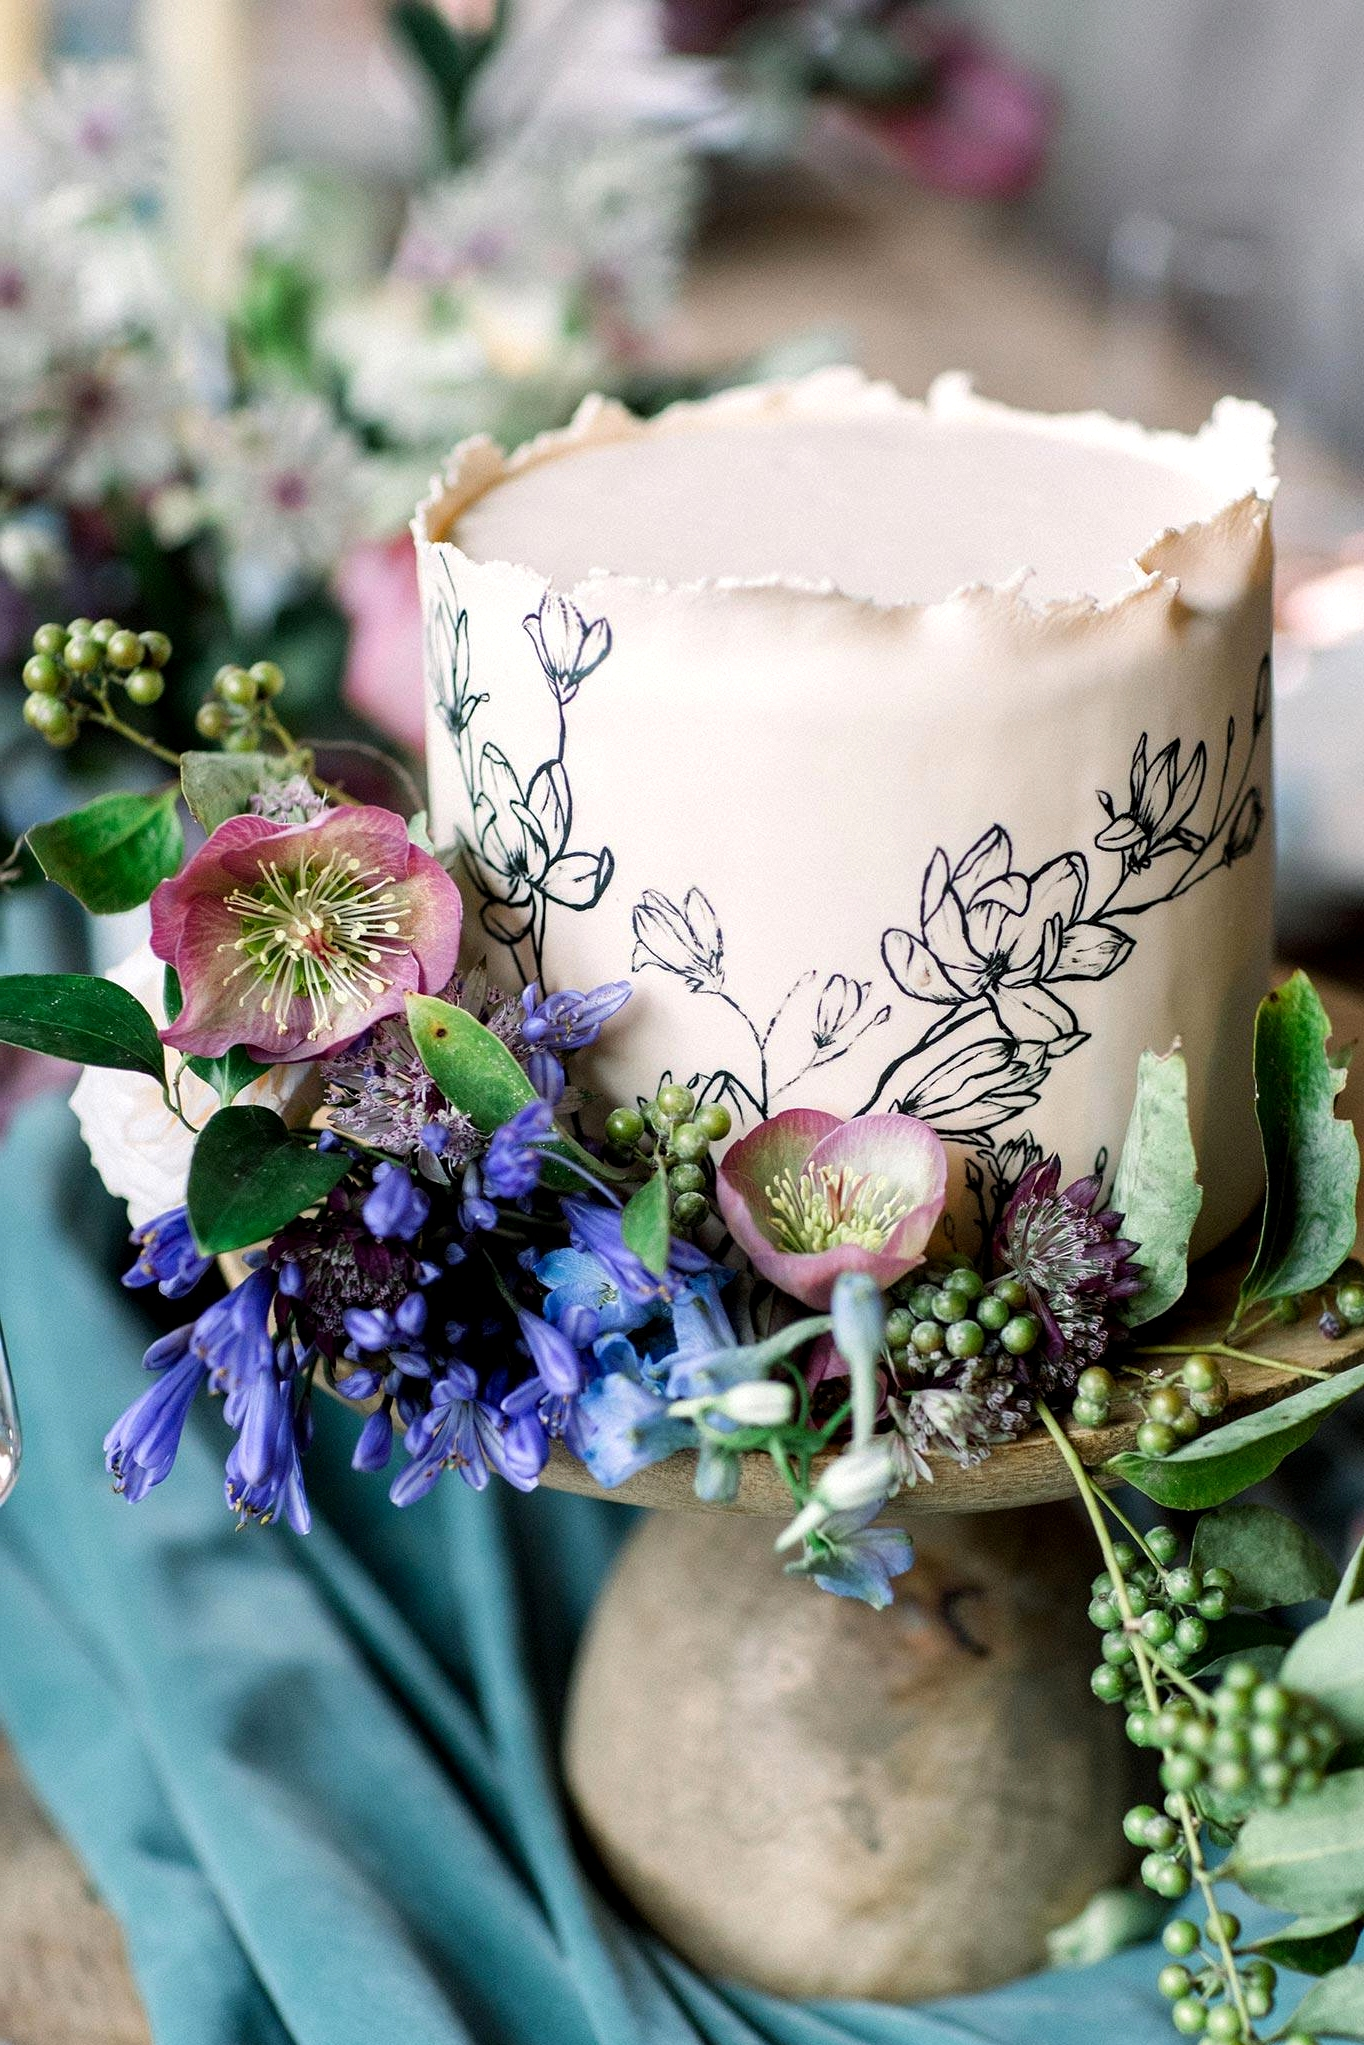 botanical sketch wedding cake with fresh flower accents and a wooden cake stand